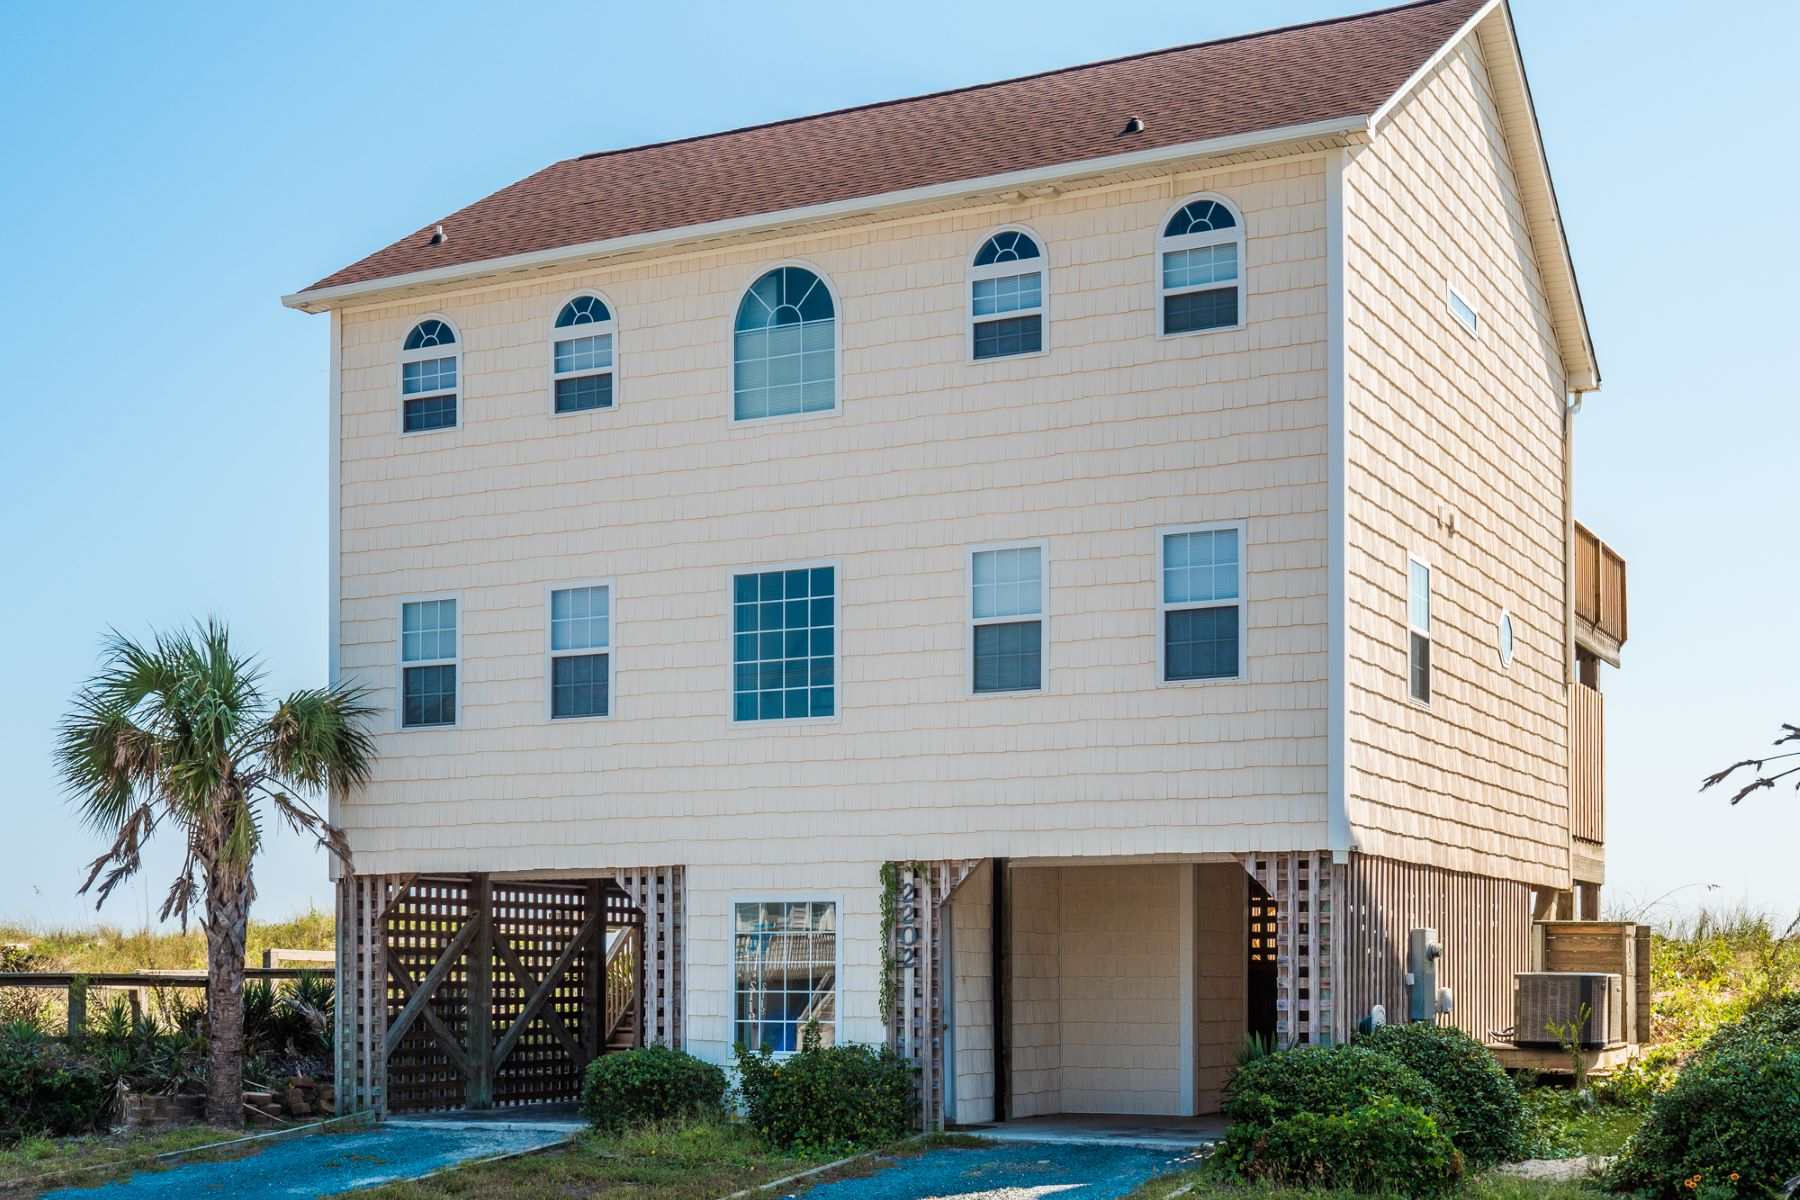 Single Family Homes for Sale at Oceanfront Living on Shore Drive 2202 S Shore Dr. Surf City, North Carolina 28445 United States